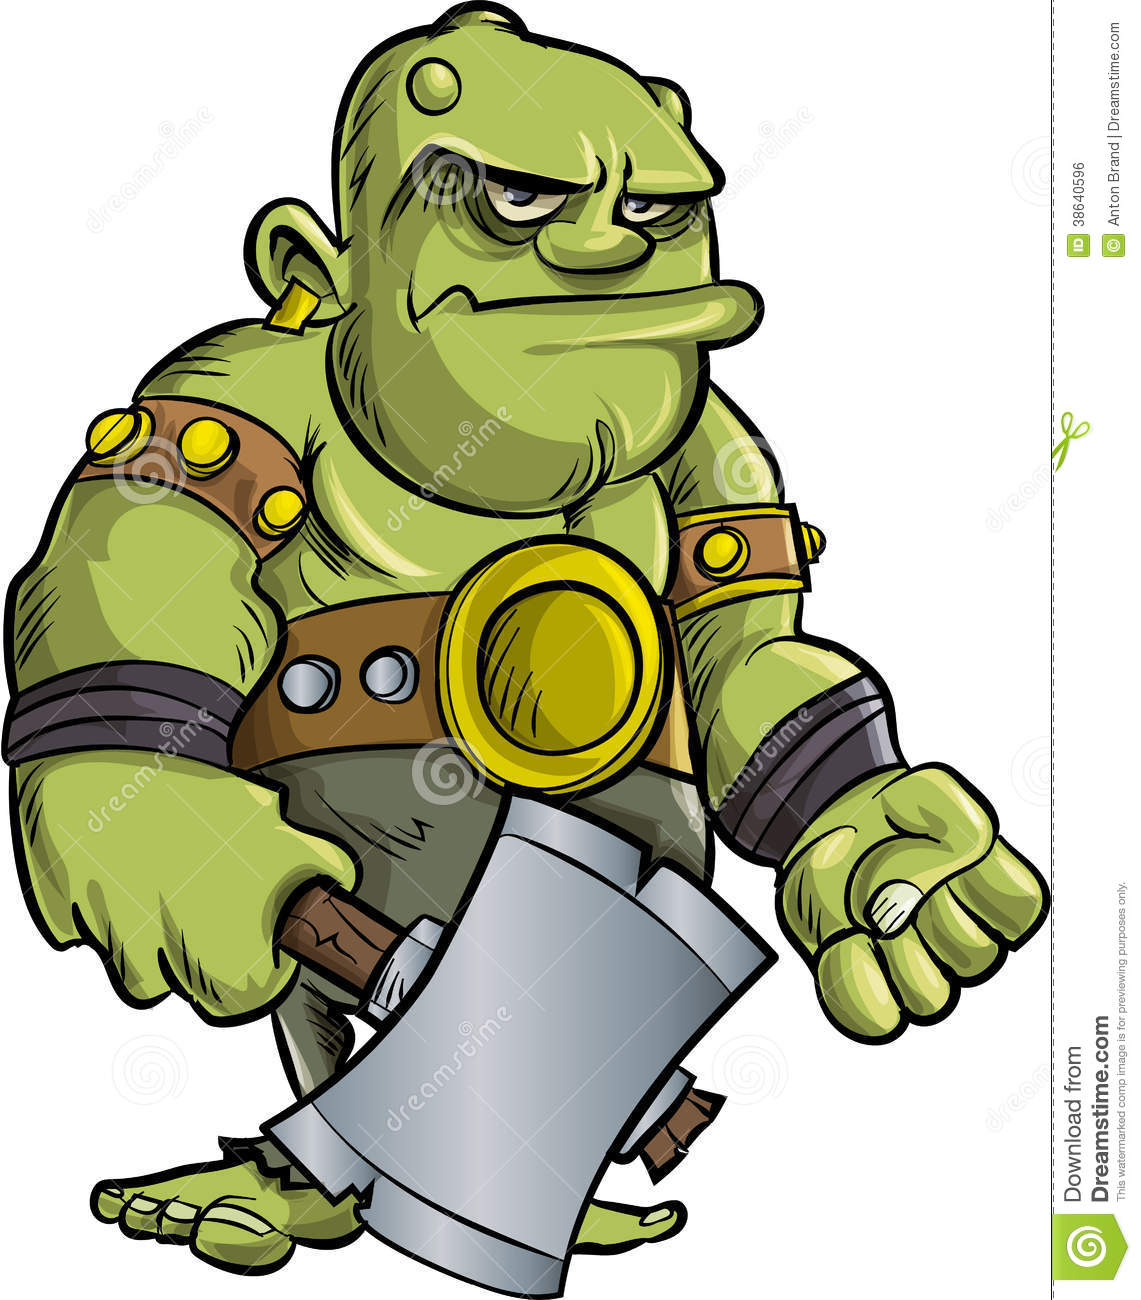 cartoon ogre with a big axe royalty free stock image